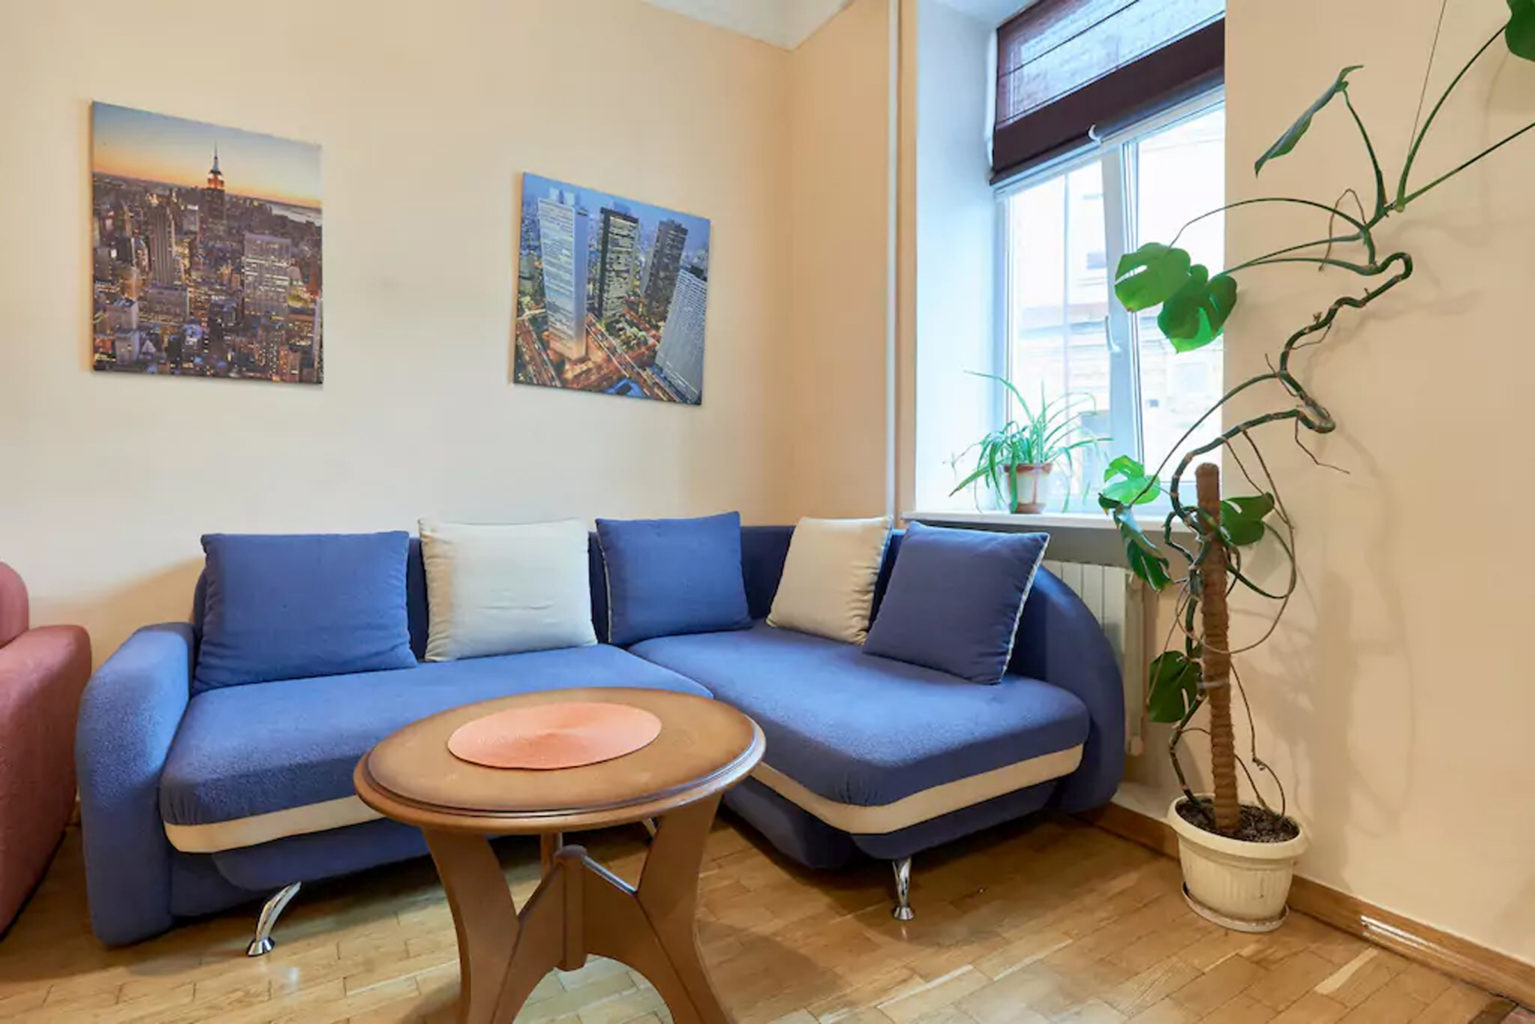 Apartment for rent in the center of Kiev, small Zhitomir 3